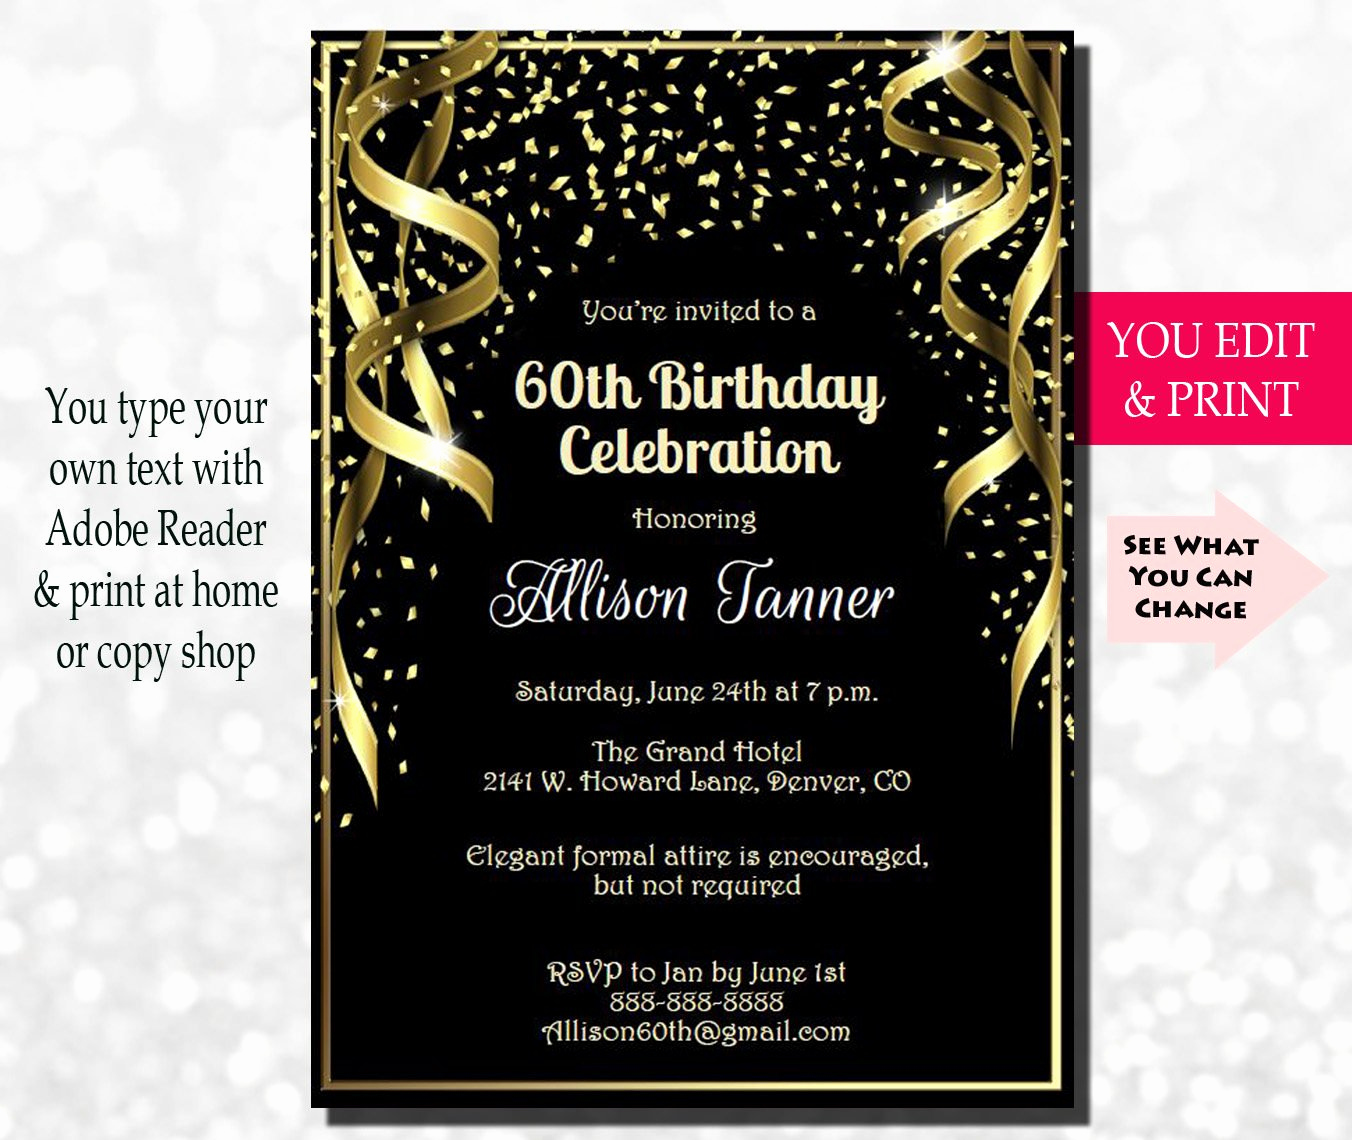 60th Birthday Invite Templates Luxury 60th Birthday Invitation 60th Birthday Party Invitation 60th